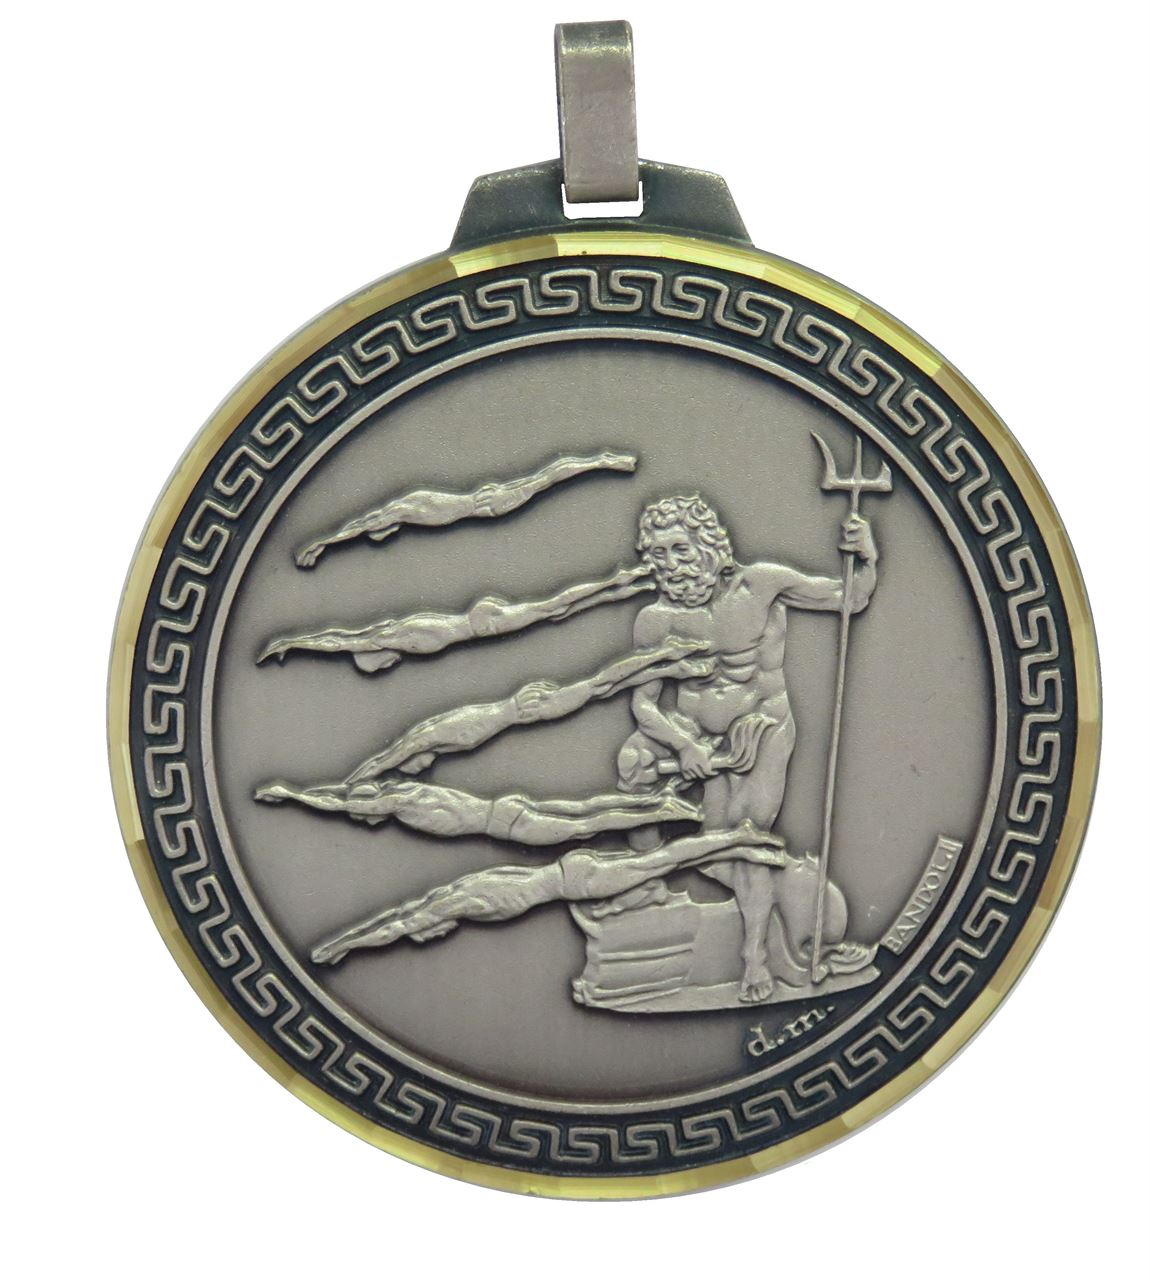 Silver Faceted Male Swimming Medal (size: 70mm) - 248F